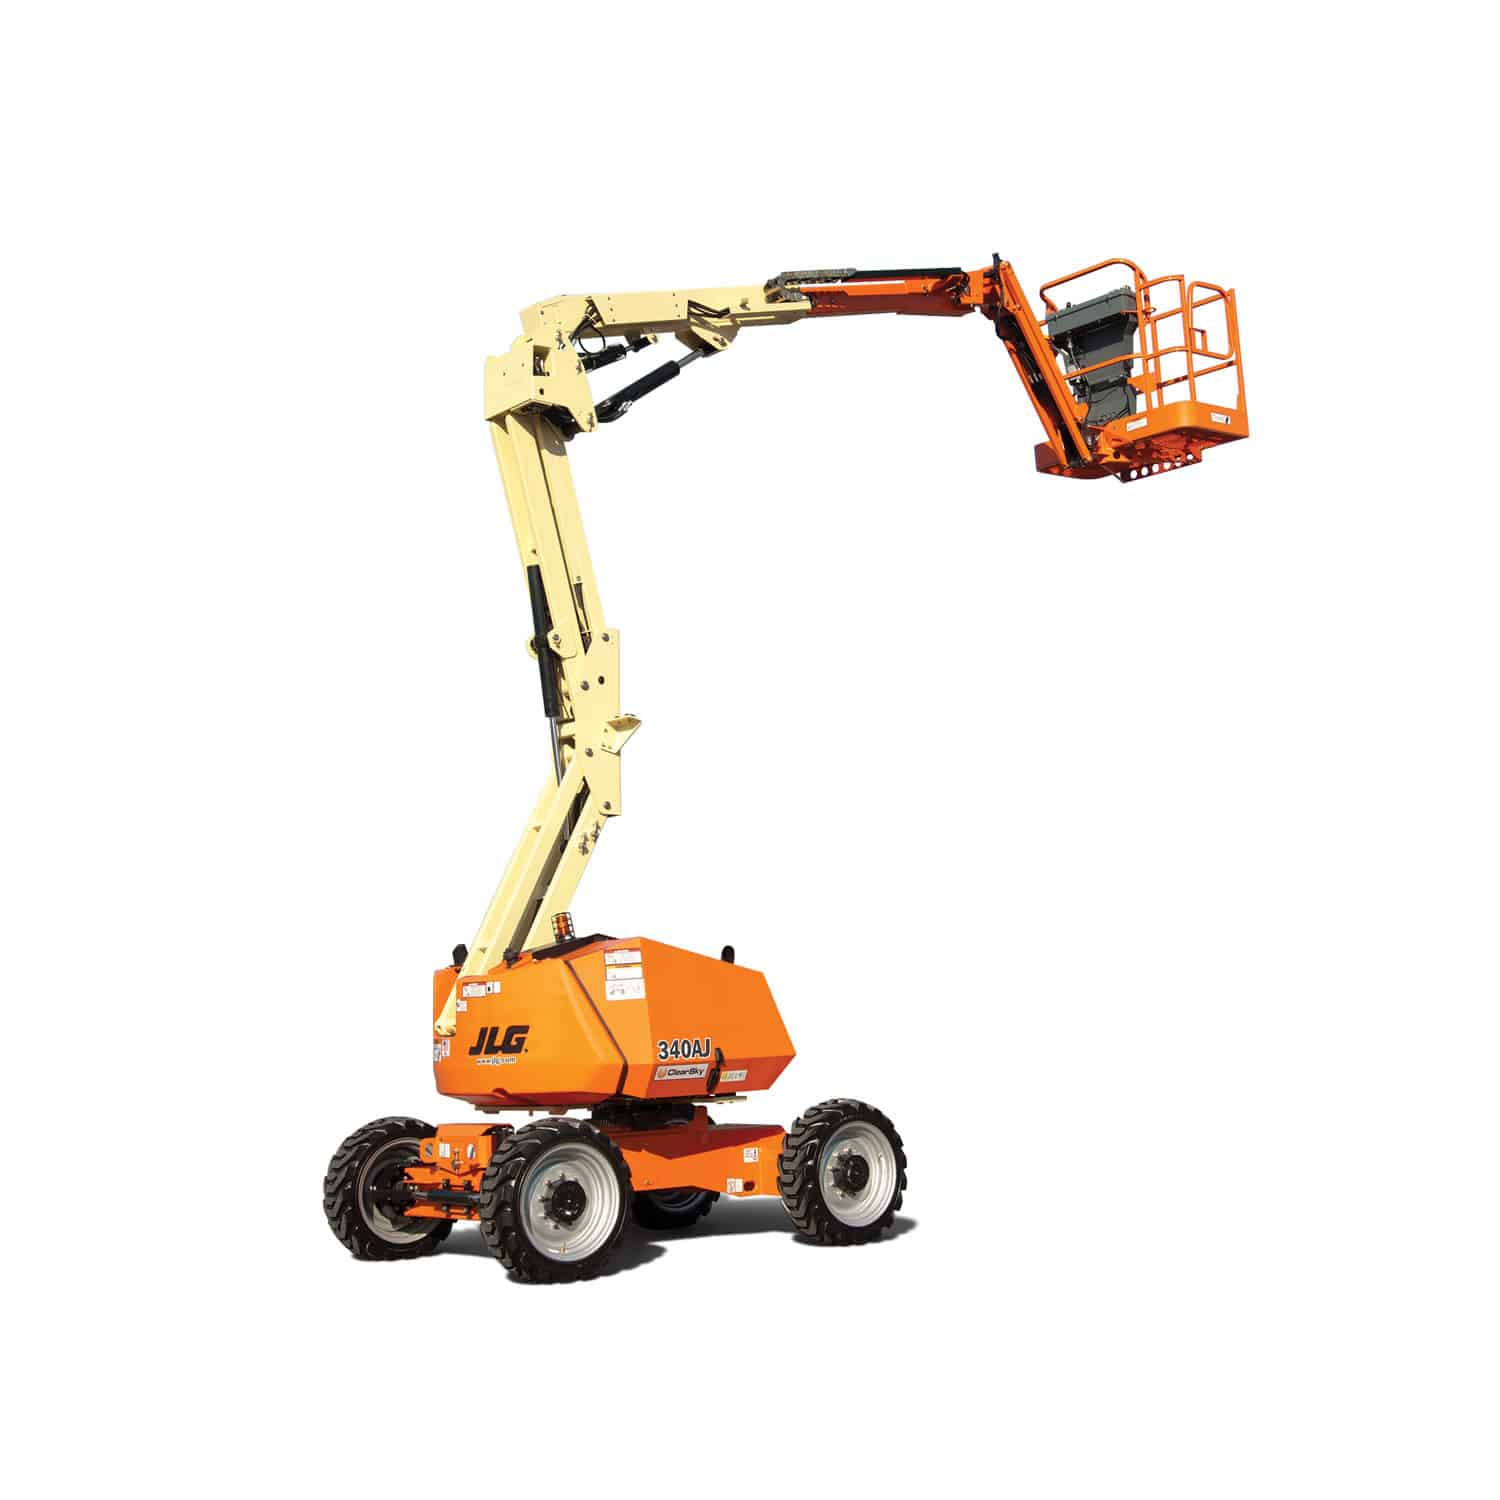 Wiring Diagram For Jlg 800aj Wheeled Articulated Boom Lift All Terrain Construction Outdoor 340aj